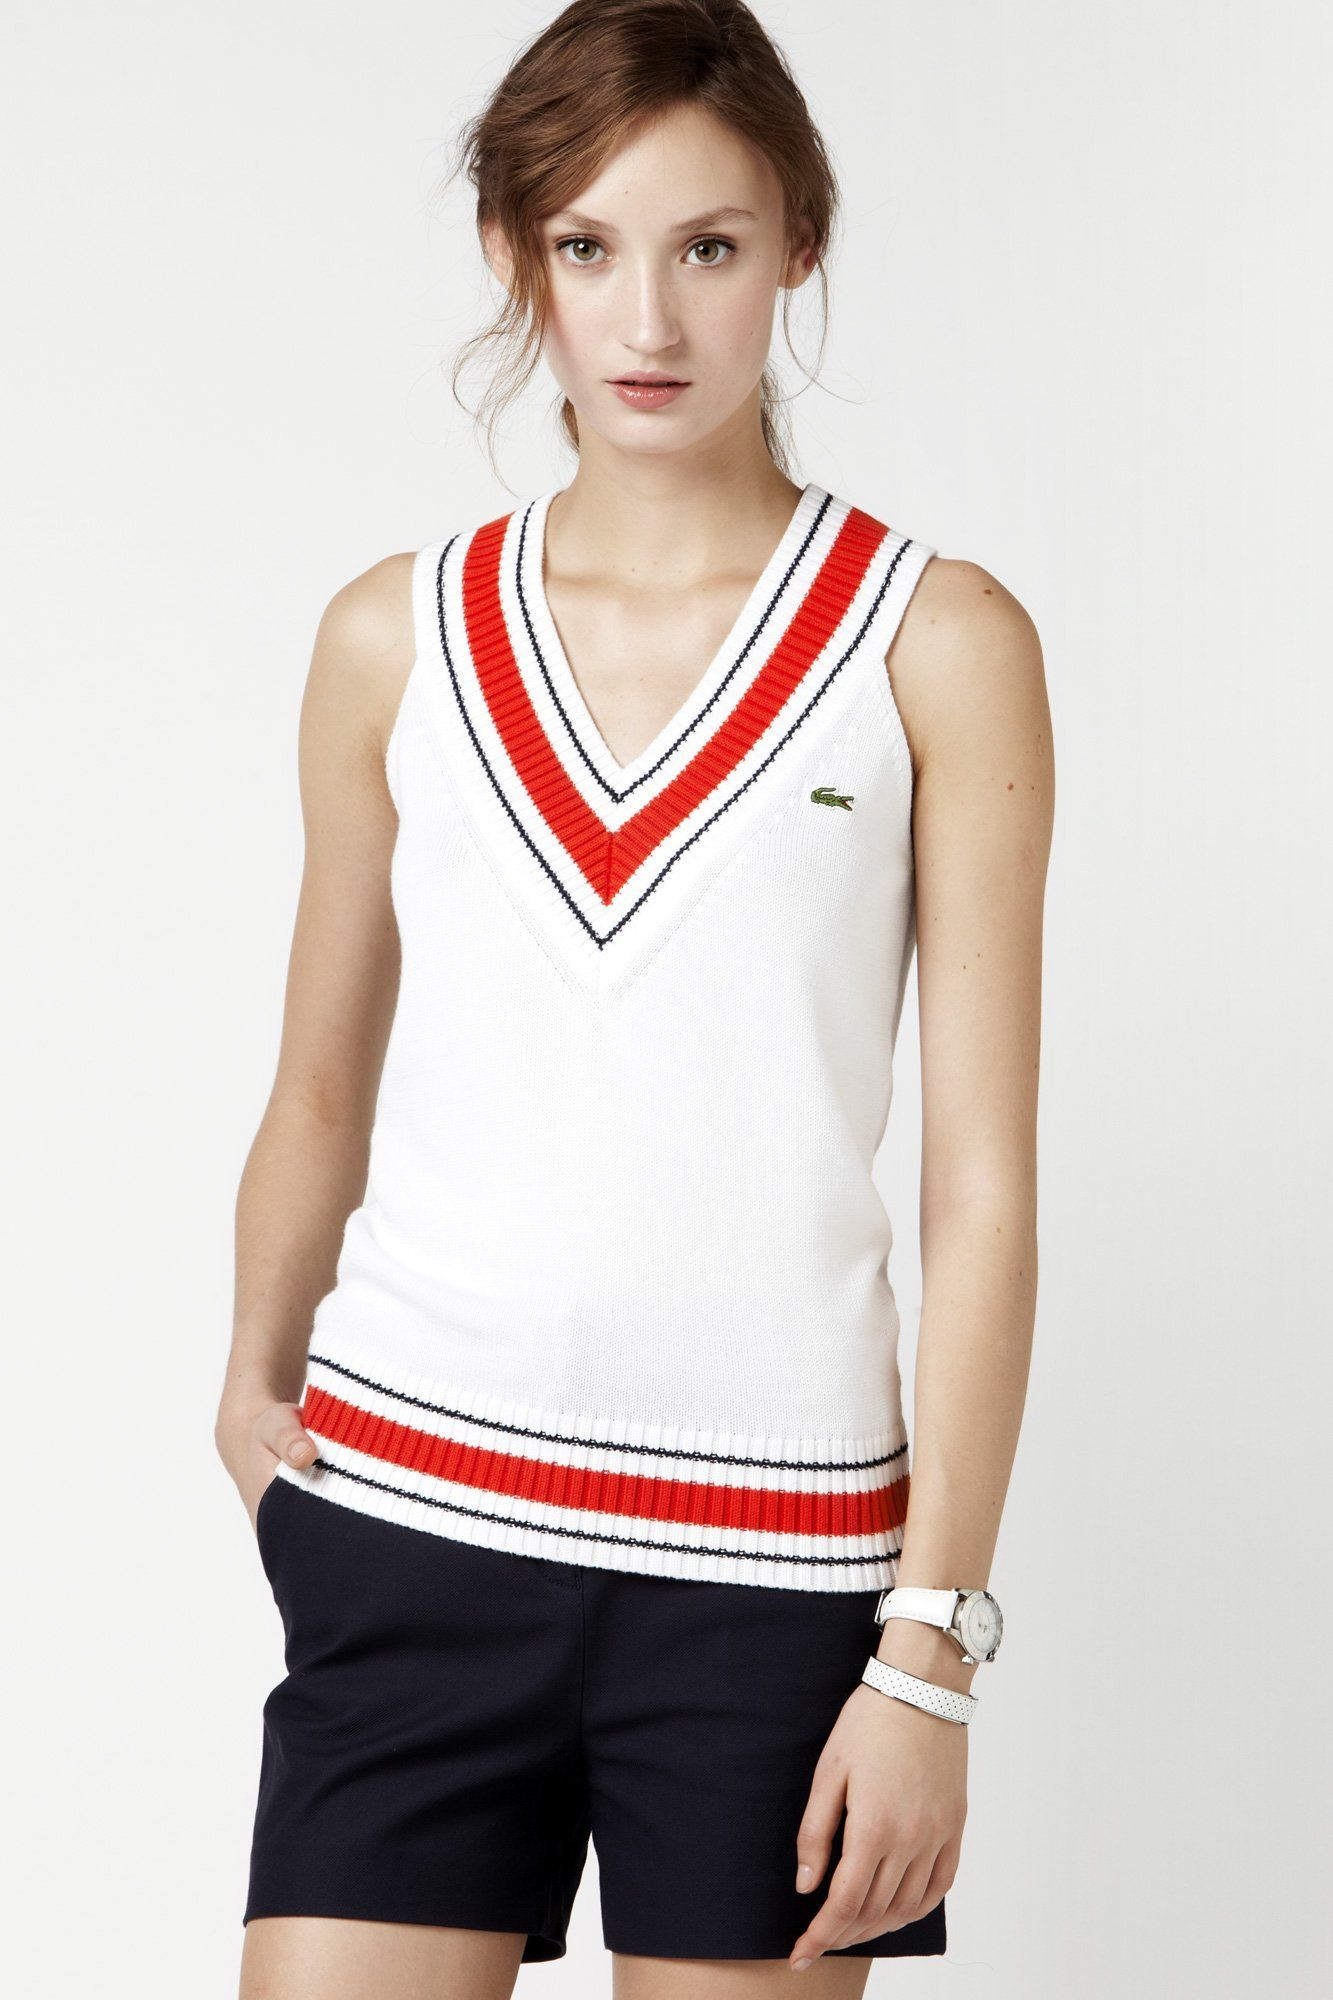 Lacoste sleeveless cotton vneck tipped sweater vest